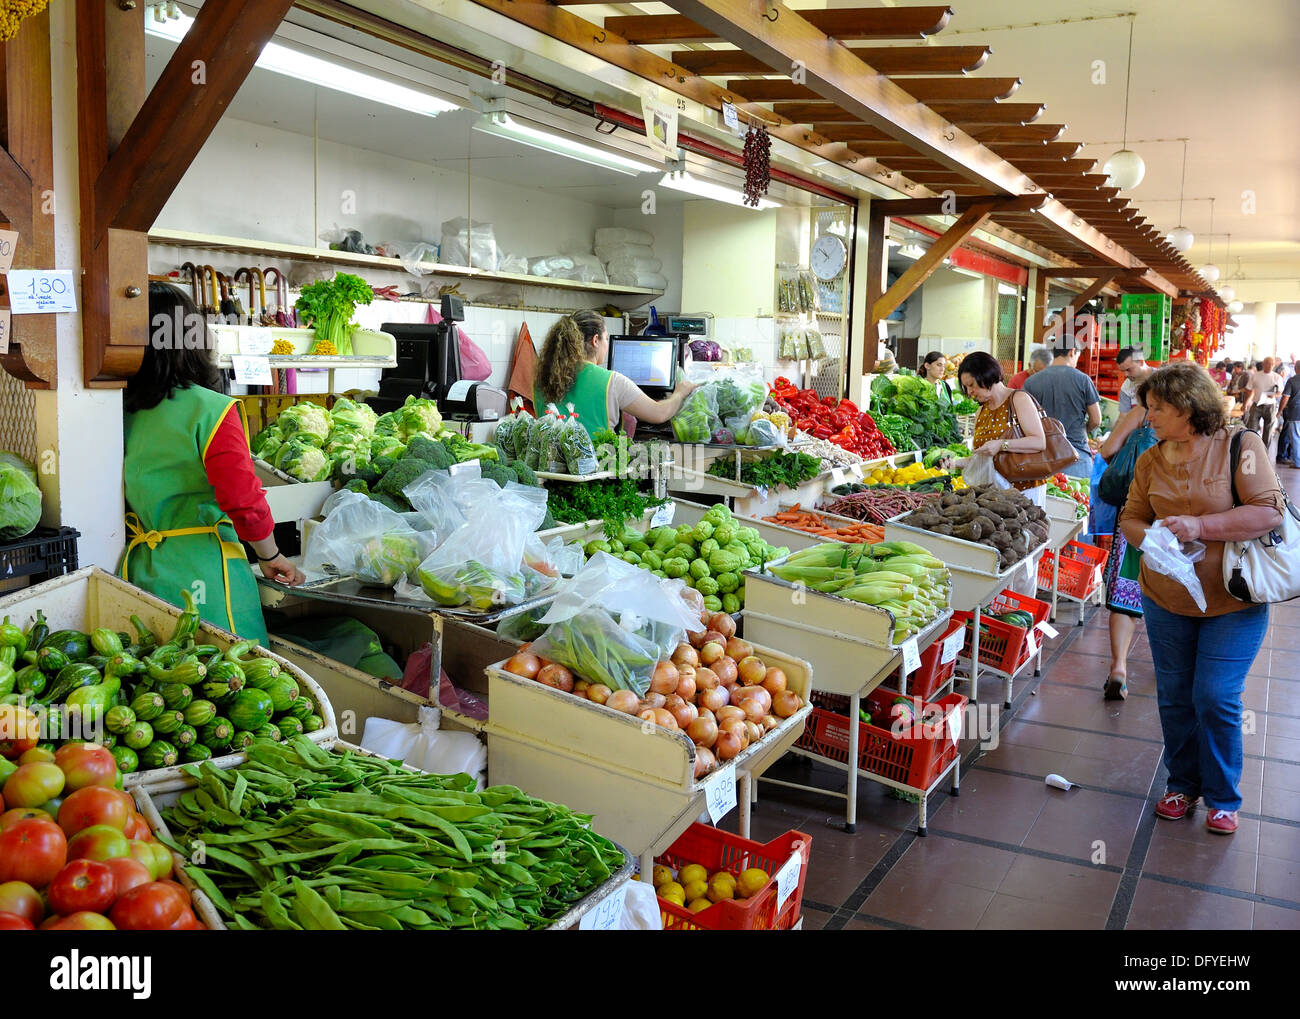 The indoor fruit and vegetable market Mercado dos Lavradores Funchal, Madeira Portugal - Stock Image